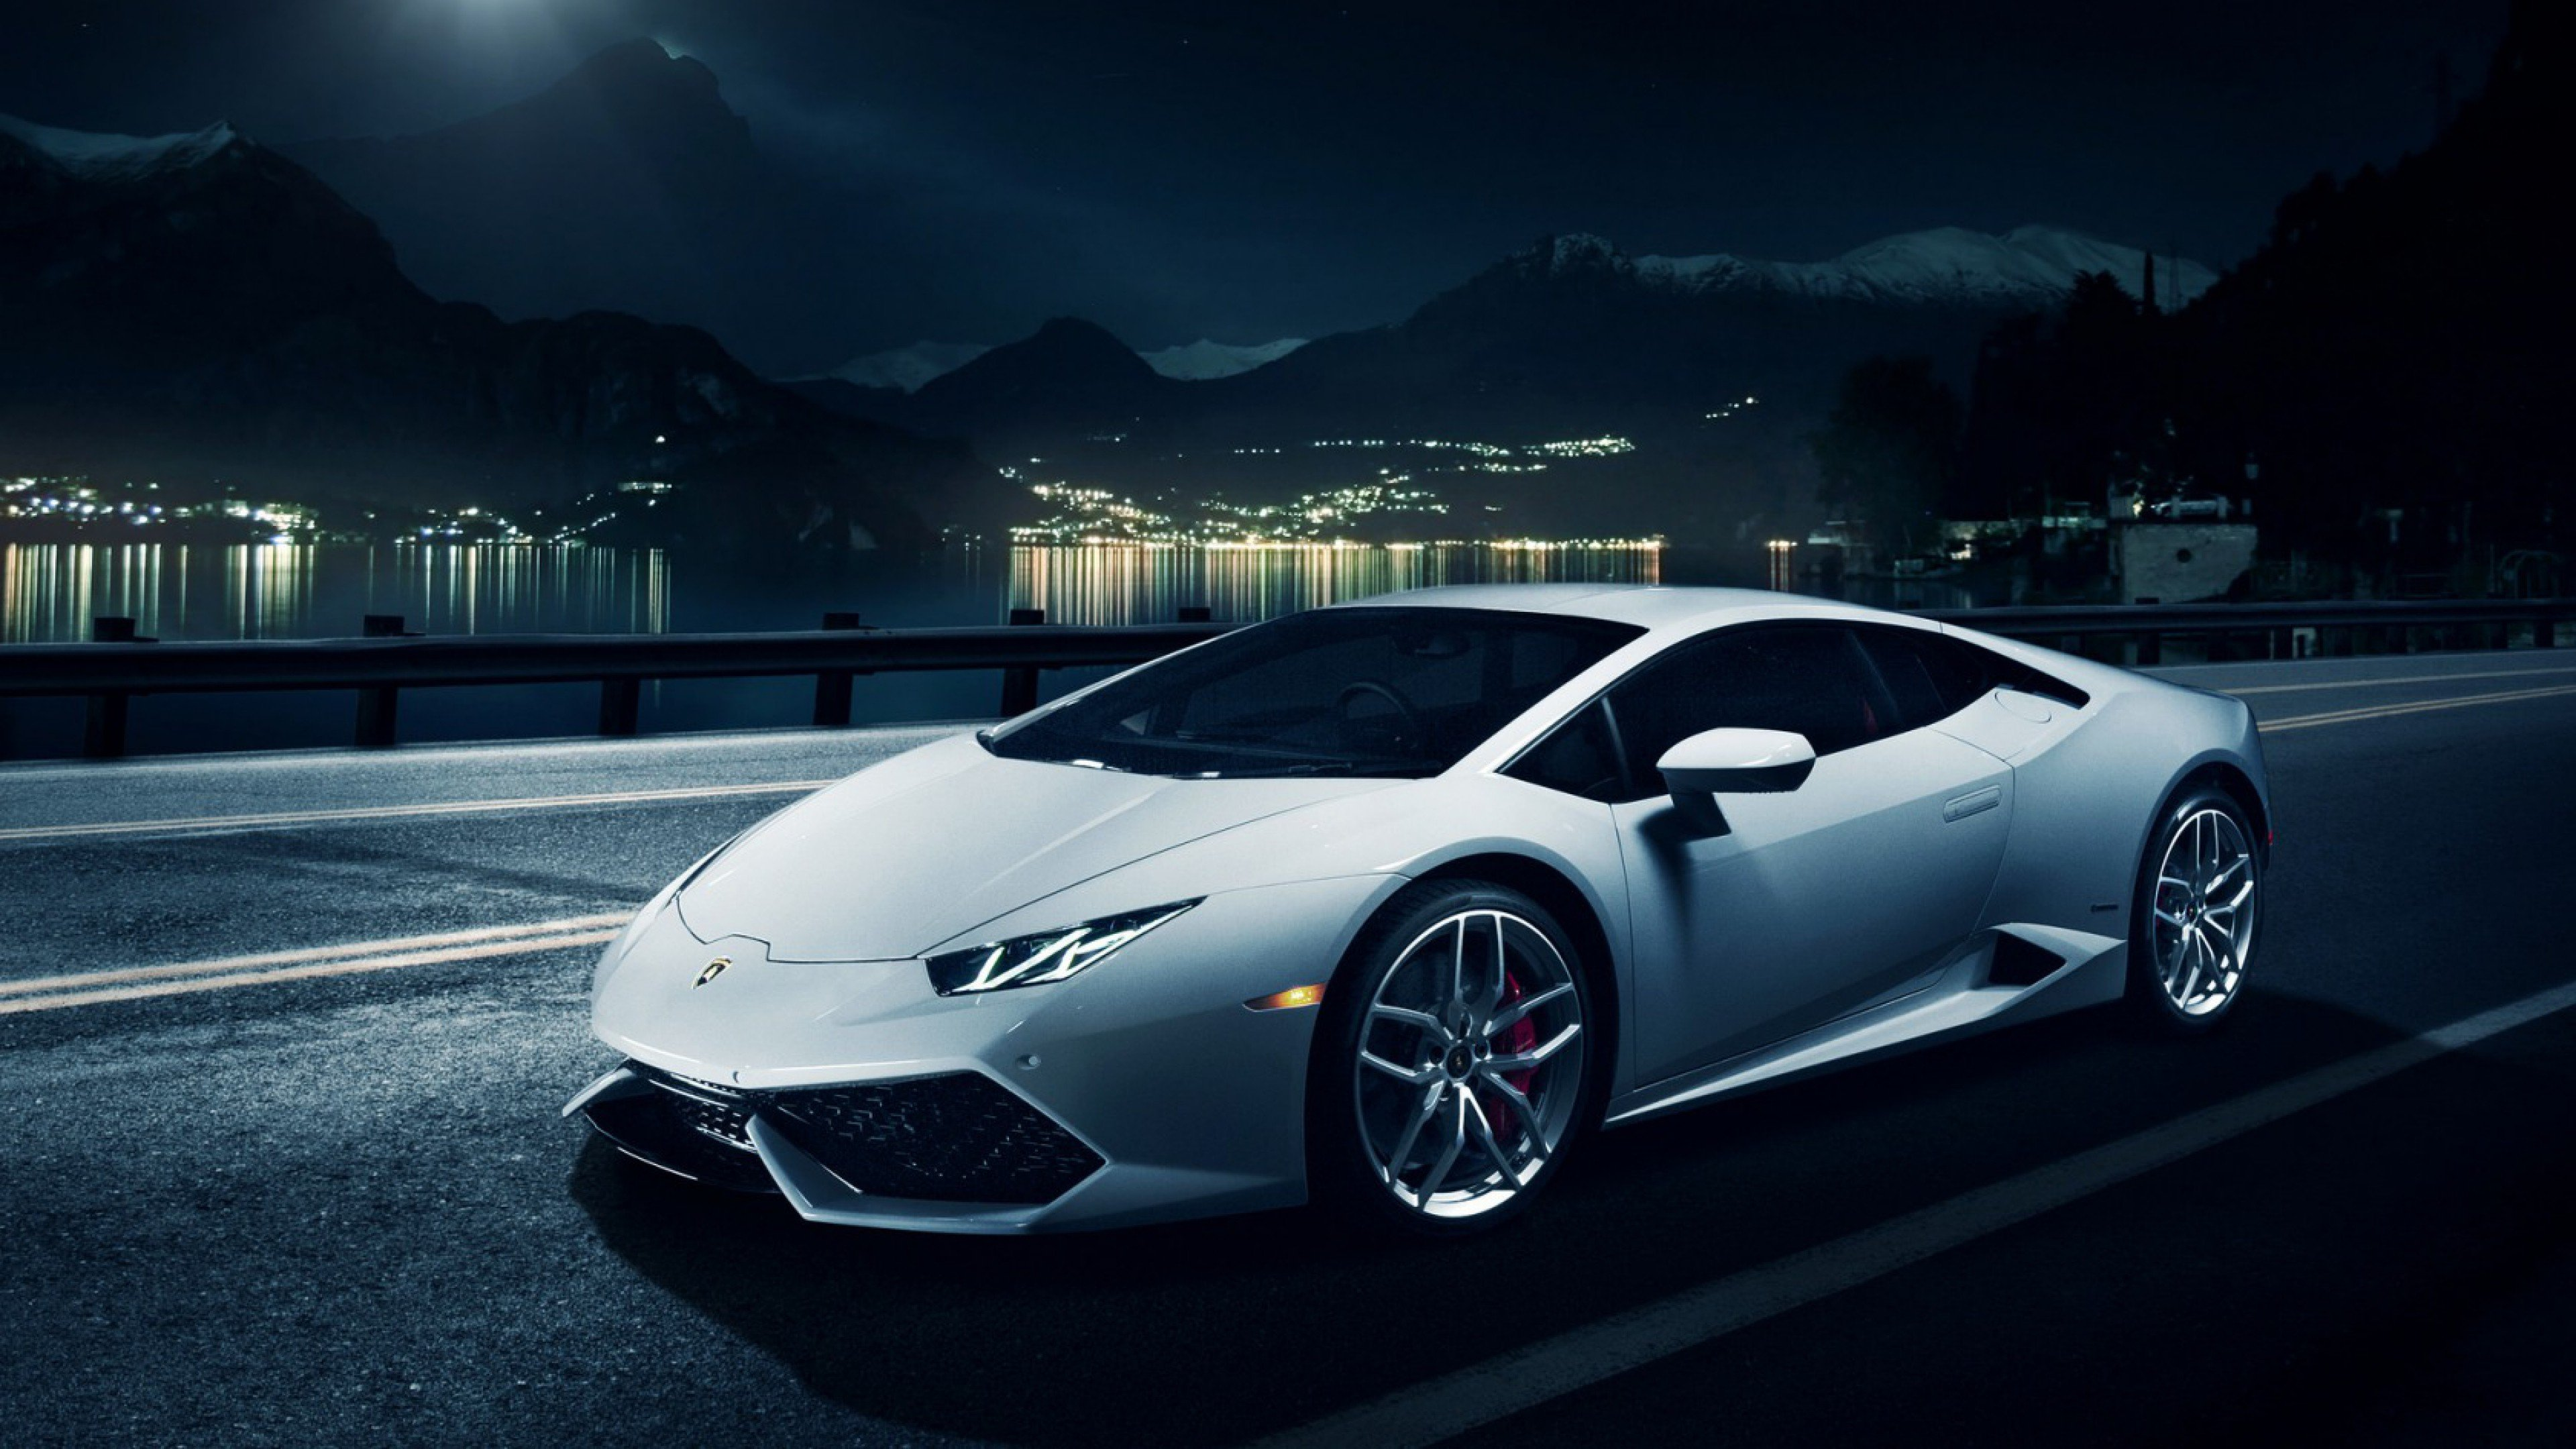 lamborghini huracan hd hd cars 4k wallpapers images. Black Bedroom Furniture Sets. Home Design Ideas